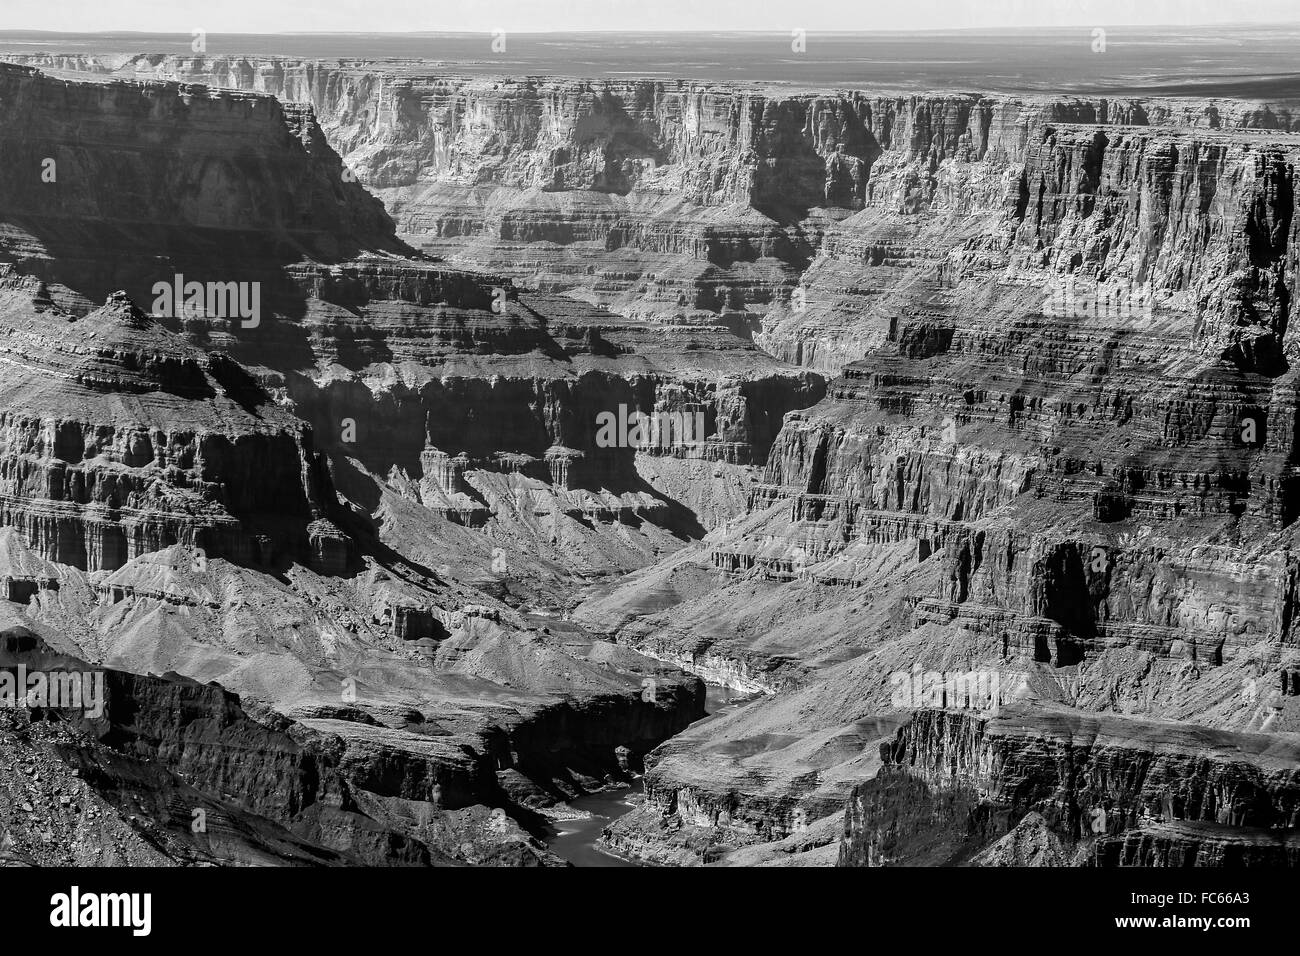 Into Grand Canyon in monochrome - Stock Image